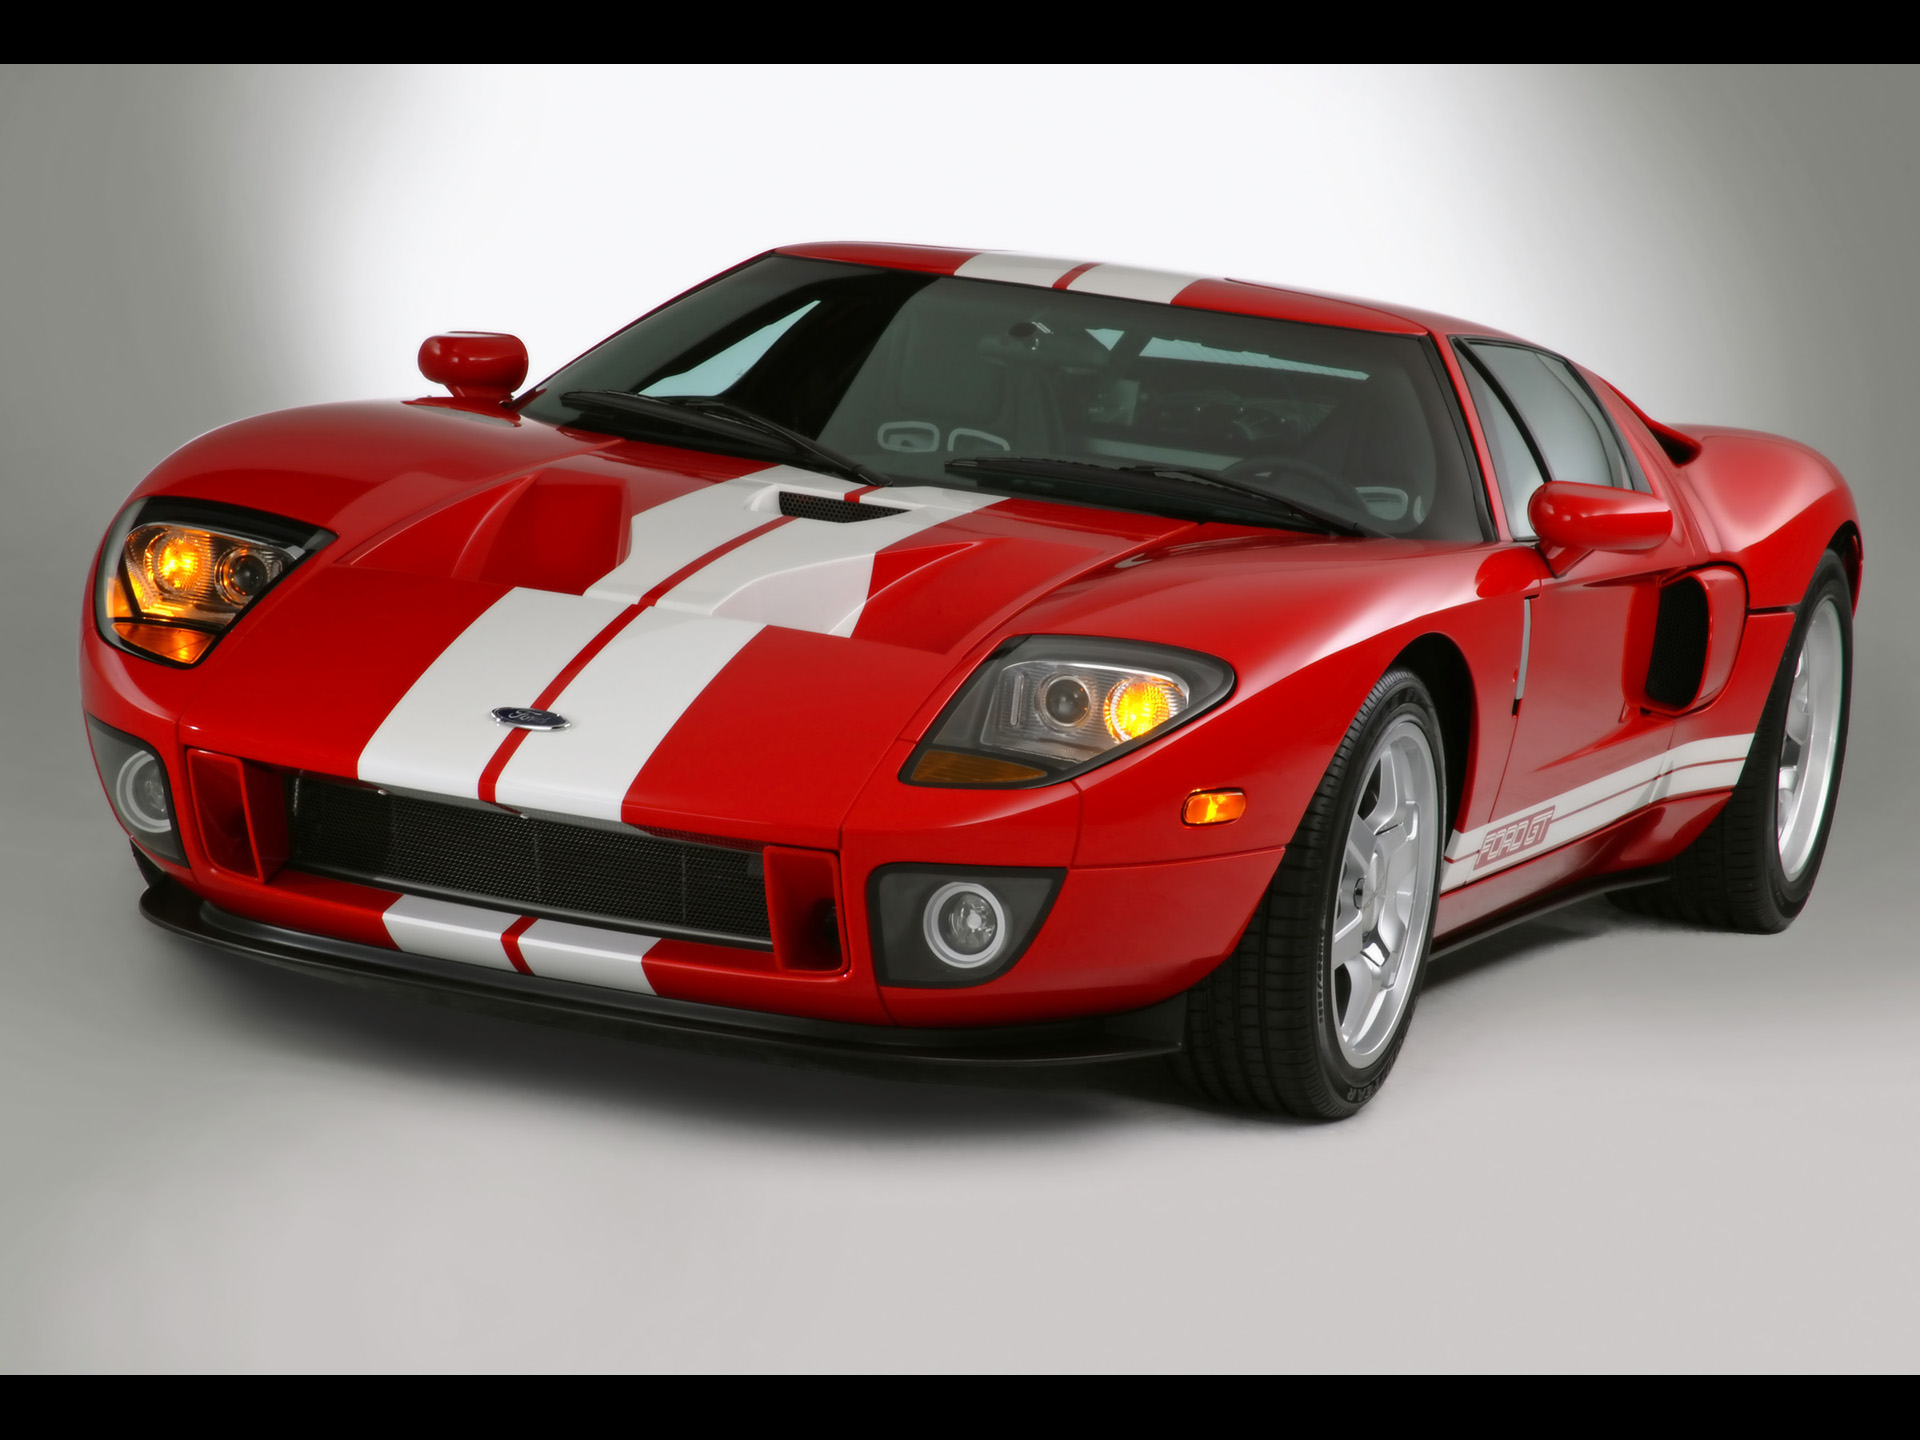 Ford Gt Images  Ford Gt Red Fa Studio Hd Wallpaper And Background Photos